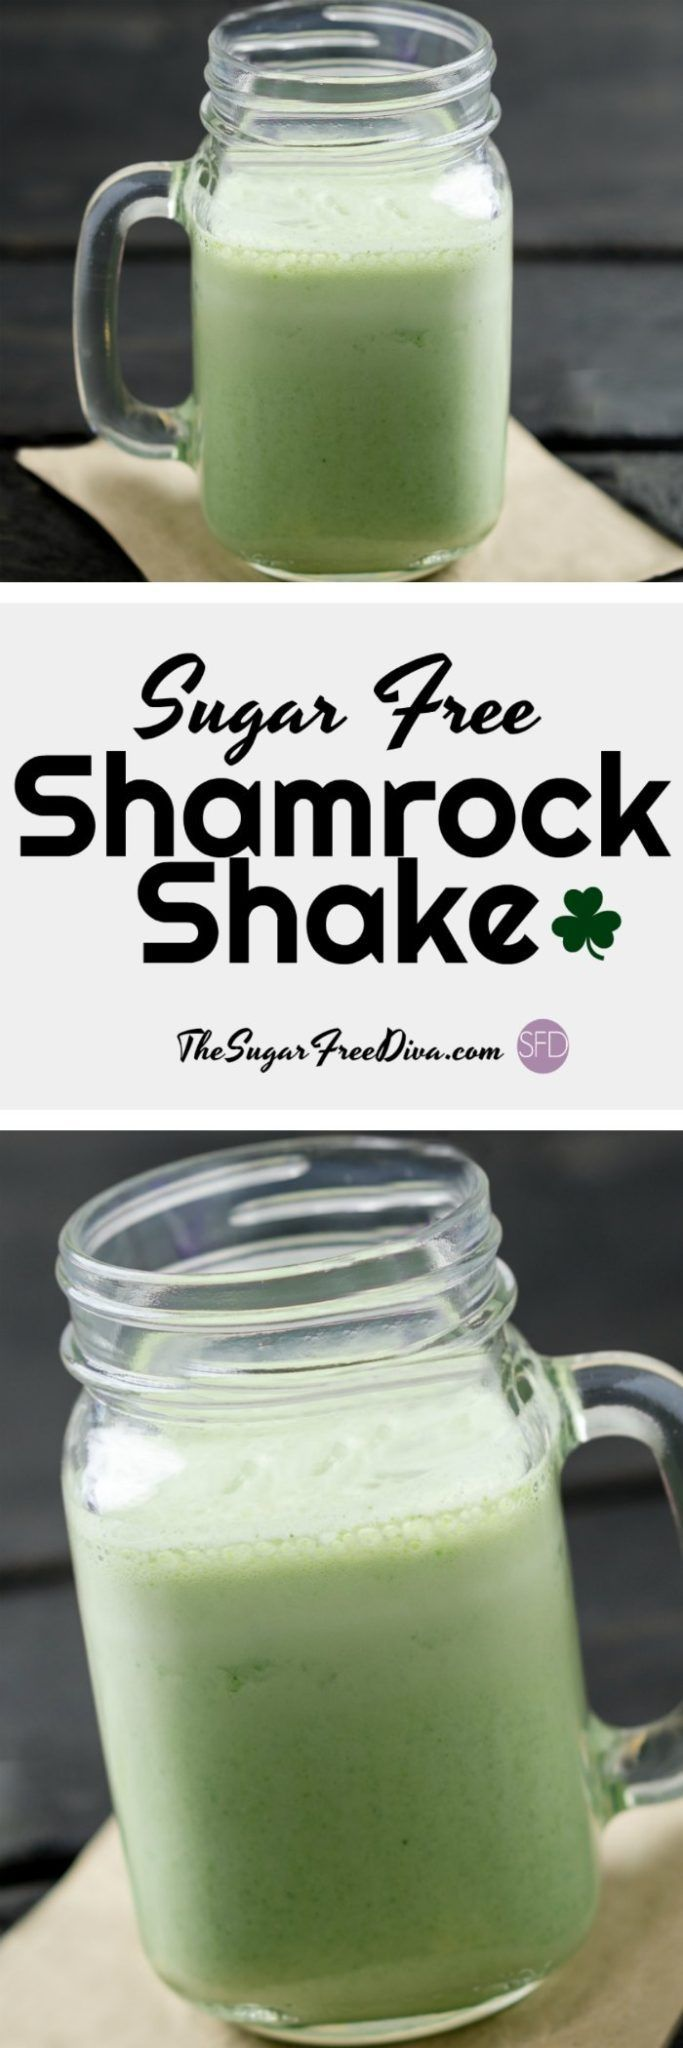 The perfect Copycat recipe for those of us to cut down on the sugar in out Shamrock Shake. #sugarfree #shamrock #shake #shamrockshake #lowsugar #copycat #recipe #yummy